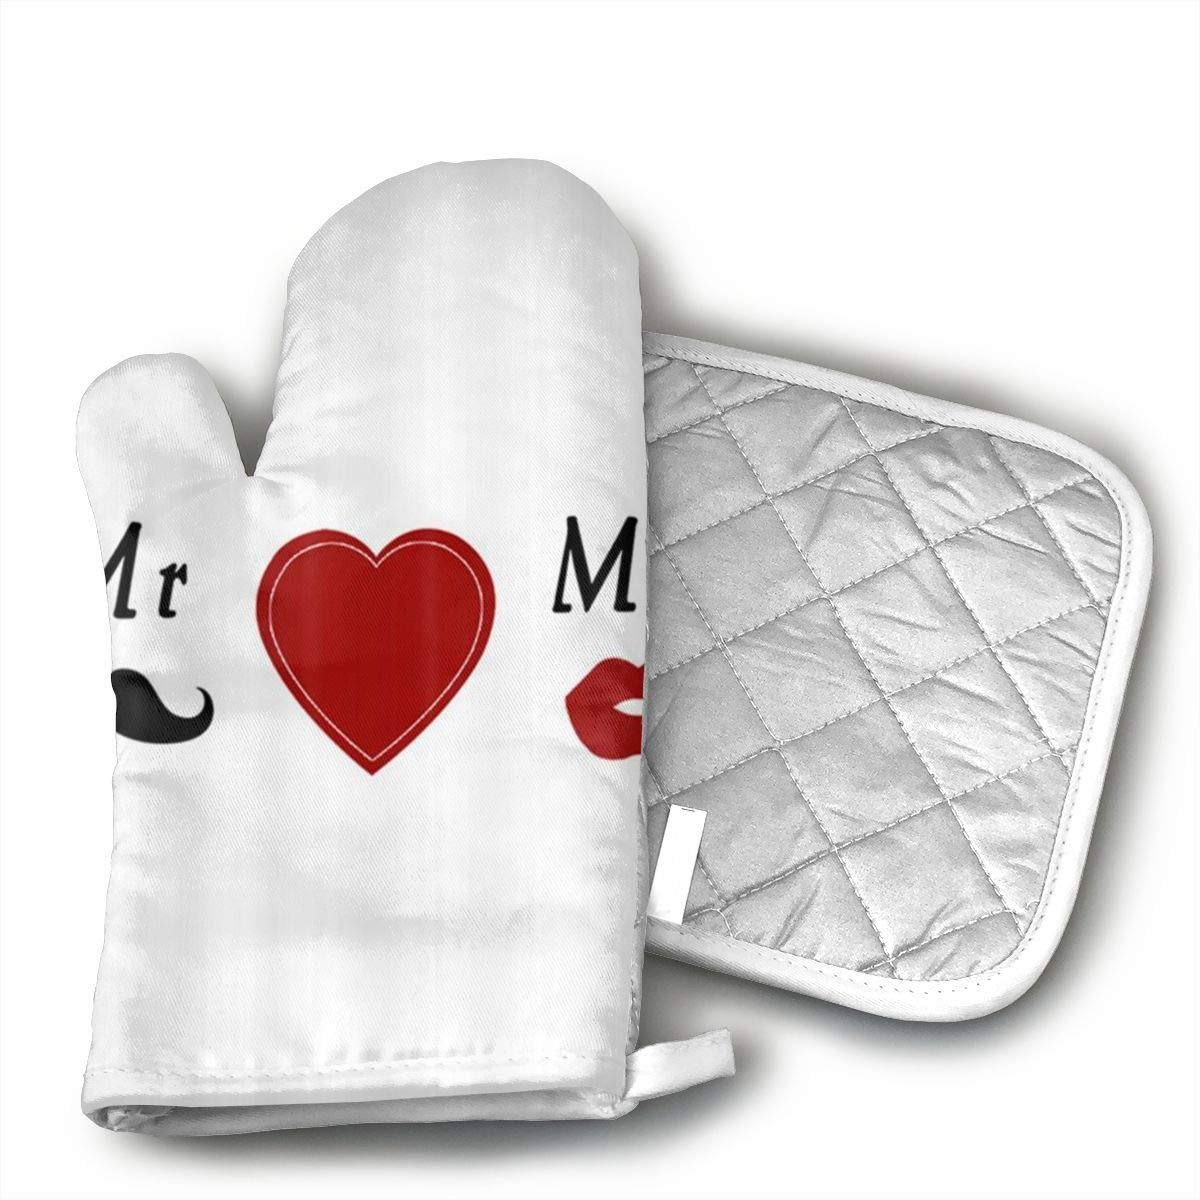 My Love Bride Groom Mr & Mrs Oven Mitts with Quilted Cotton Lining - Professional Heat Resistant Pot Holders